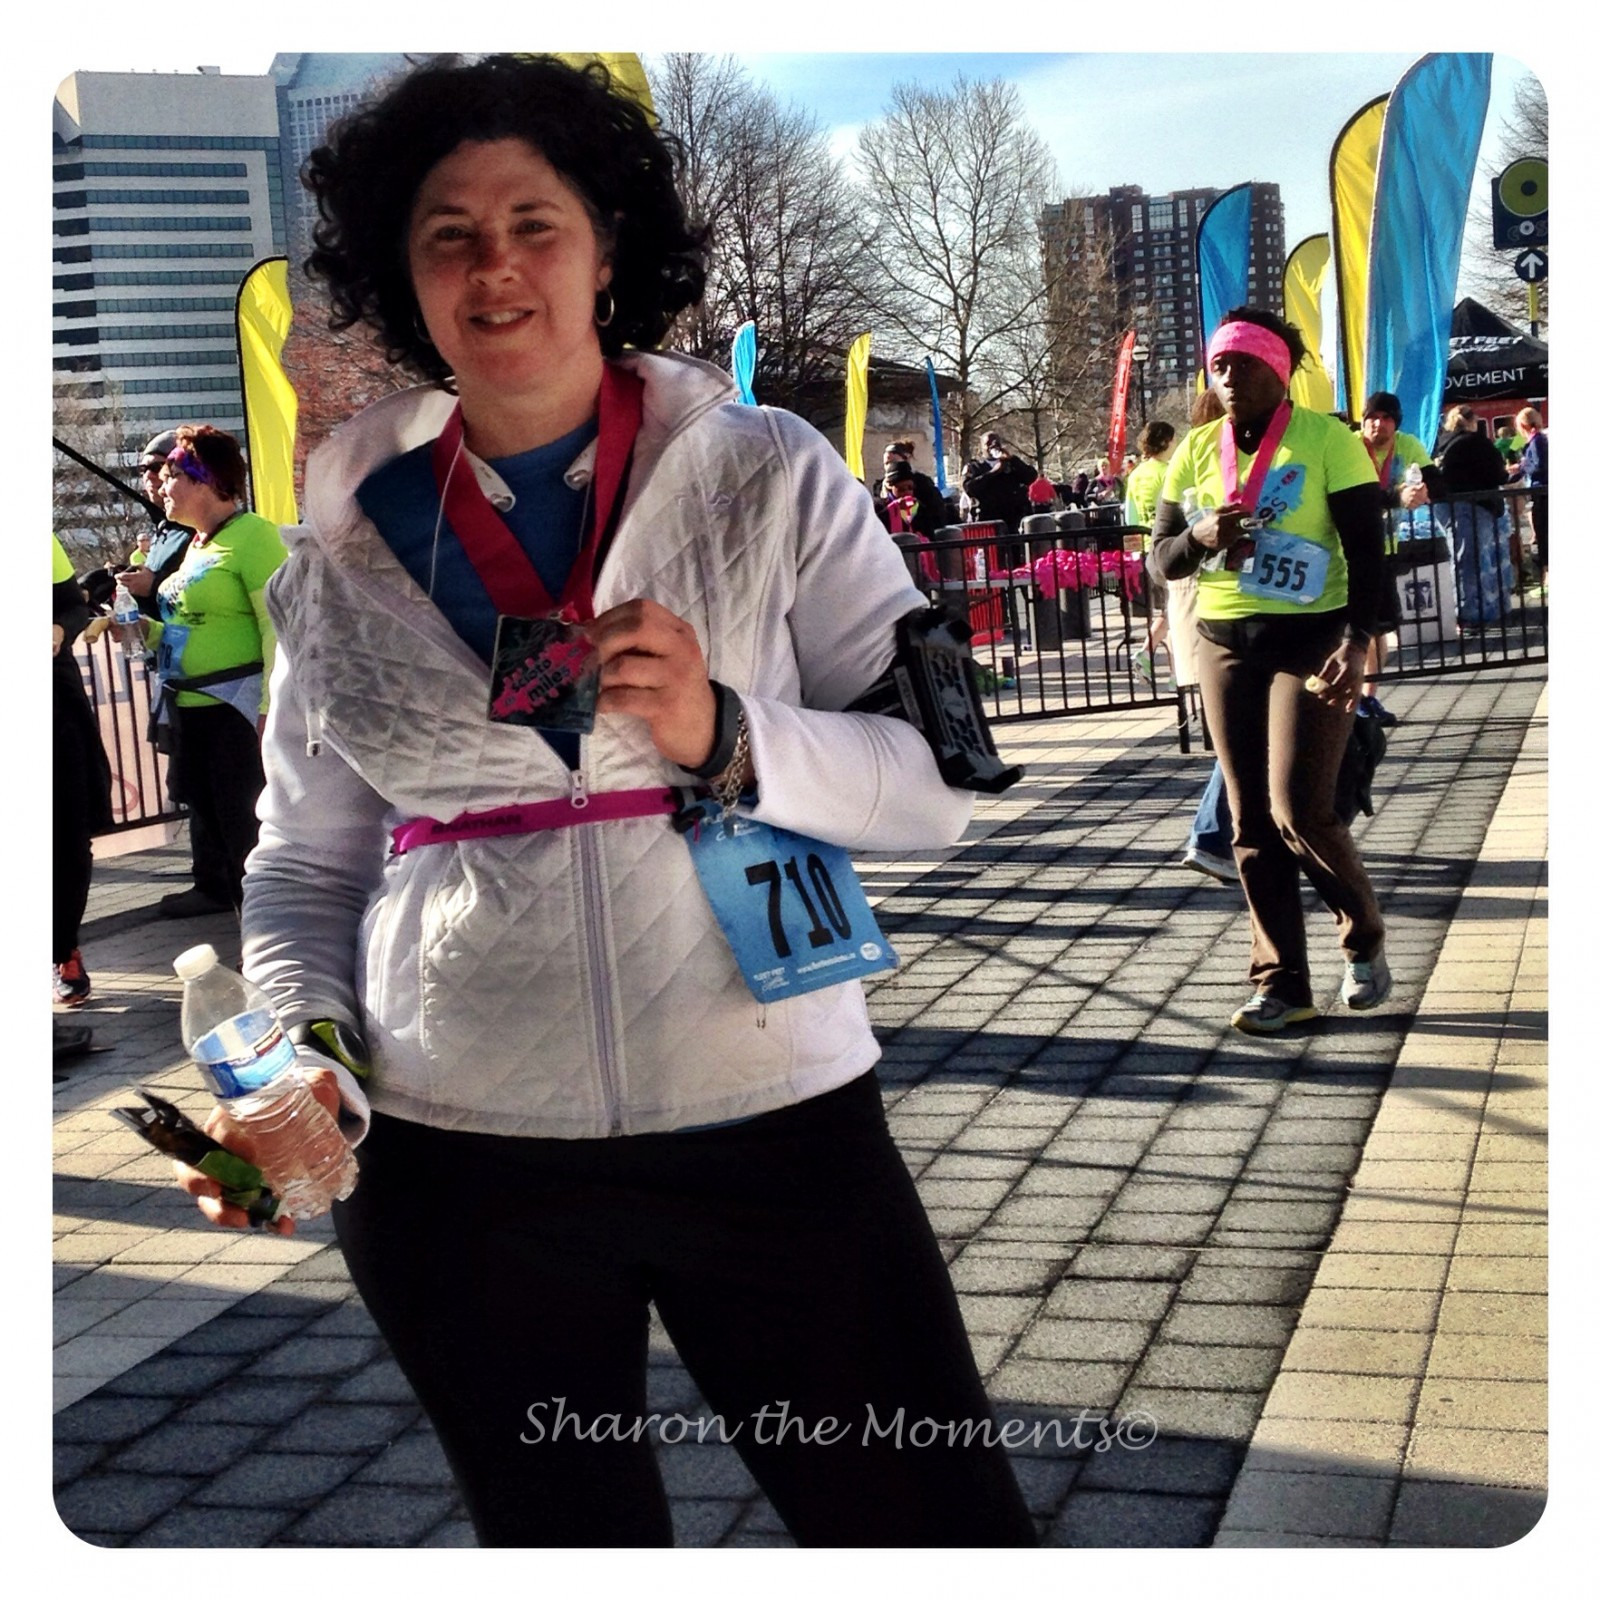 The Running Regiment Continues into the Spring Scioto Miles 5K|Sharon the Moments Blog